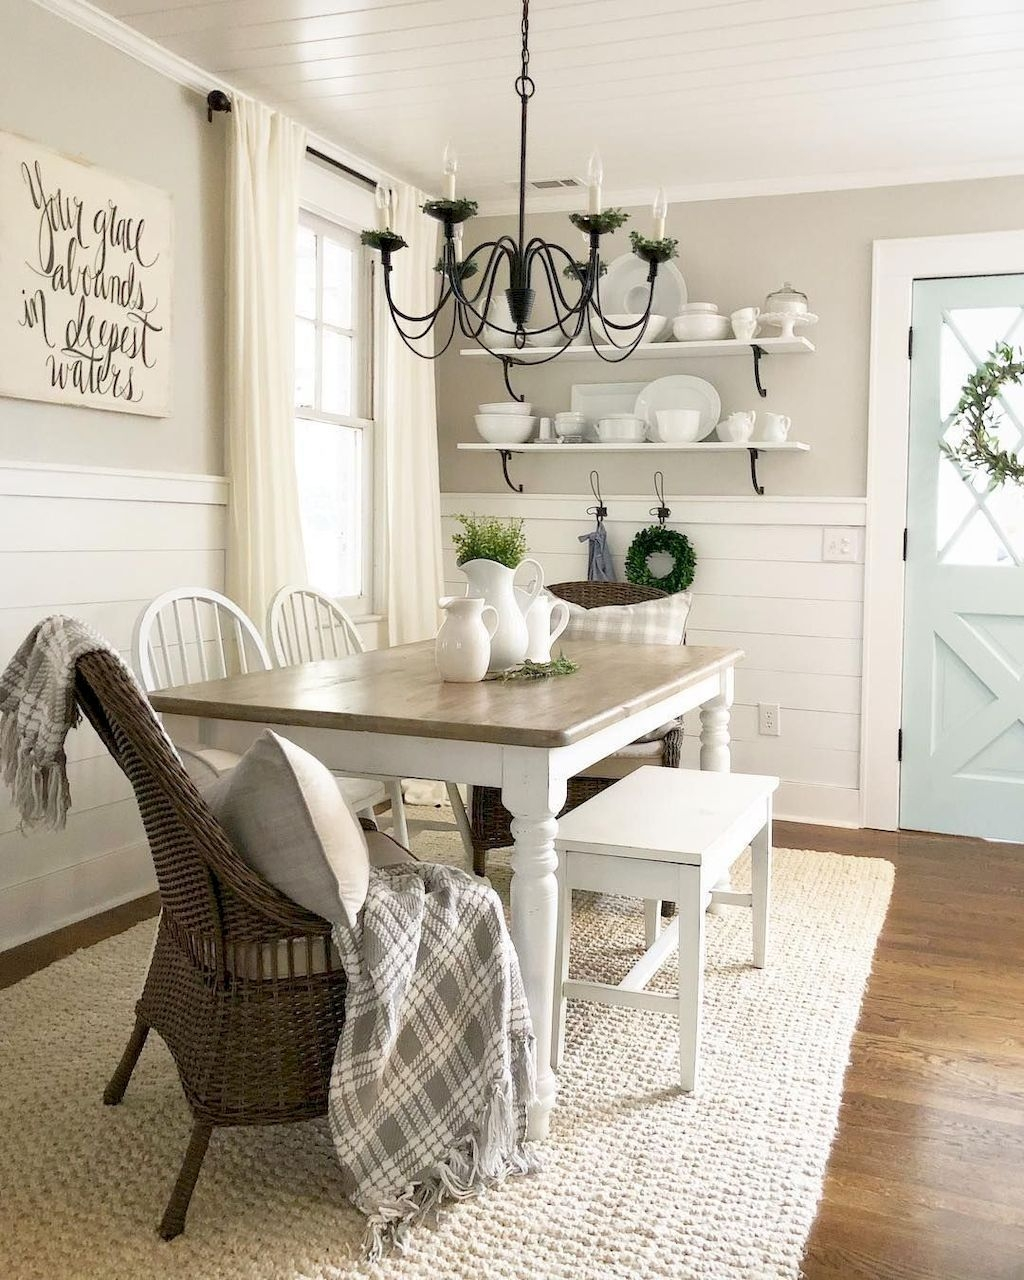 Popular Farmhouse Dining Room Design Ideas Trend 2019 23